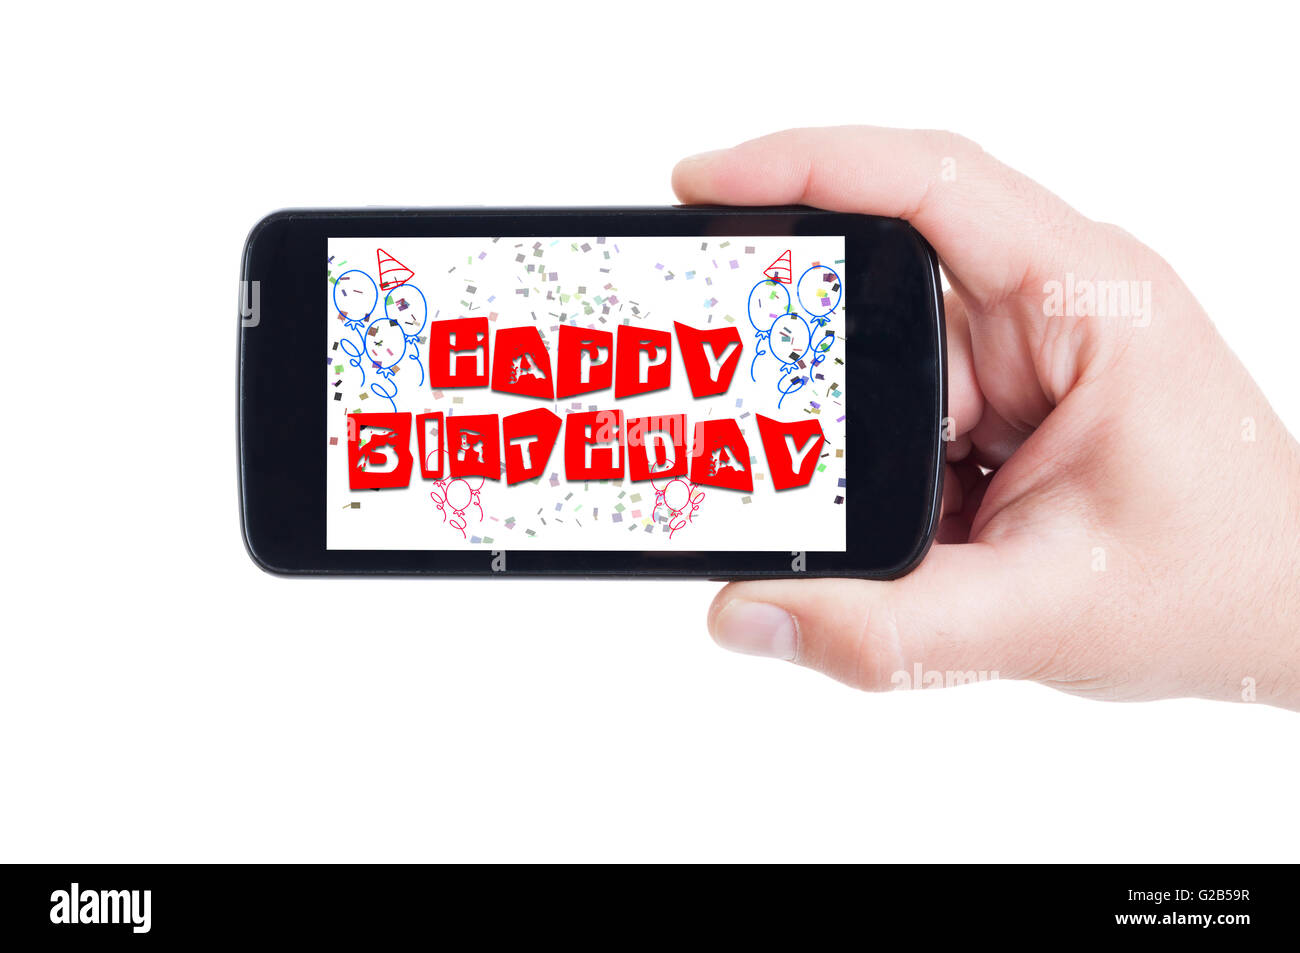 Happy birthday concept on smartphone display or phone screen - Stock Image